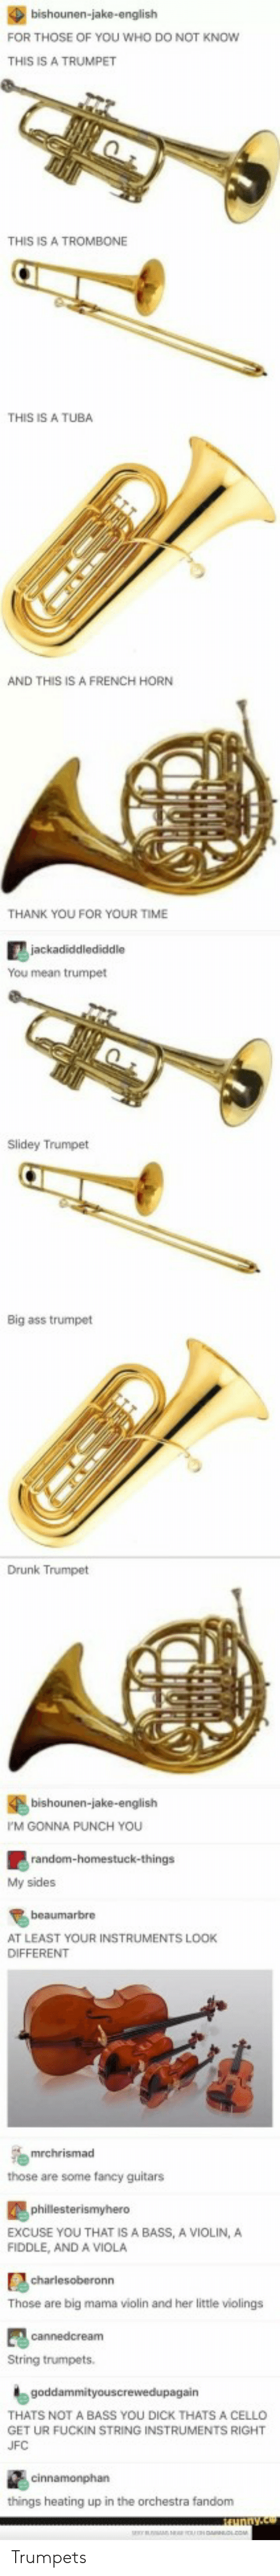 Drunk, Ufc, and Thank You: FOR THOSE OF YOU WHO DO NOT KNOW  THIS IS A TRUMPET  THIS IS A TROMBONE  THIS IS A TUBA  AND THIS IS A FRENCH HORN  THANK YOU FOR YOUR TIME  You mean trumpet  Slidey Trumpet  Big ass trumpet  Drunk Trumpet  bishounen-jake-english  M GONNA PUNCH YOU  My sides  beaumarbre  AT LEAST YOUR INSTRUMENTS LOOK  DIFFERENT  those are some fancy guitars  EXCUSE YOU THAT IS A BASS, A VIOLIN, A  FIDDLE, AND A VIOLA  Those are big mama violin and her little violings  String trumpets.  THATS NOT A BASS YOU DICK THATS A CELLO  GET UR FUCKIN STRING INSTRUMENTS RIGHT  UFC  things heating up in the orchestra fandonm Trumpets